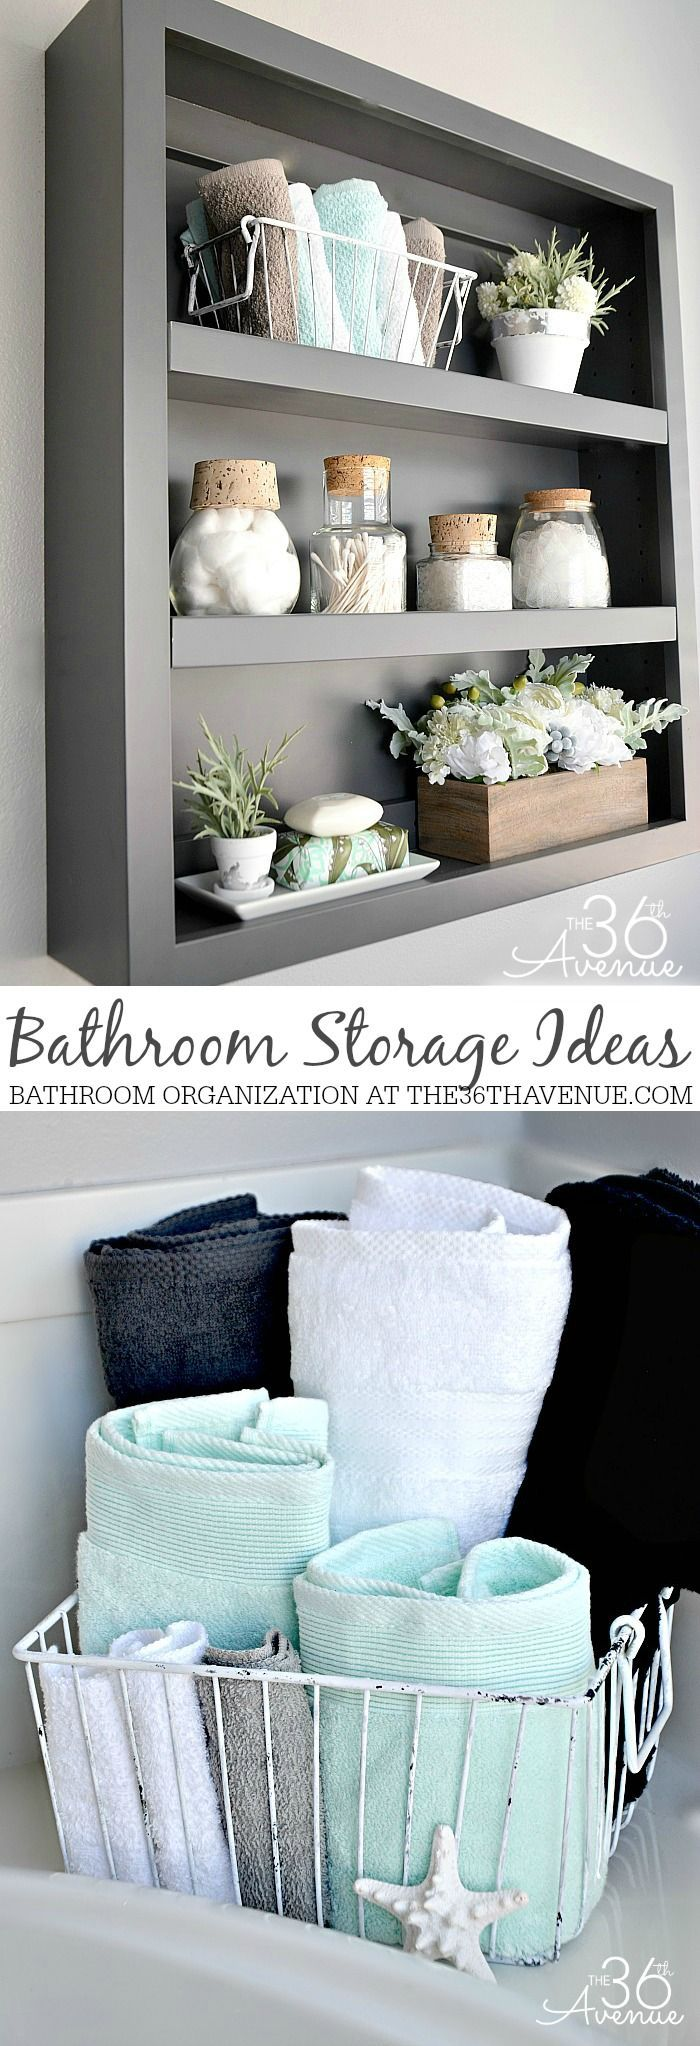 bathroom storage and ideas at cleaning bathroom